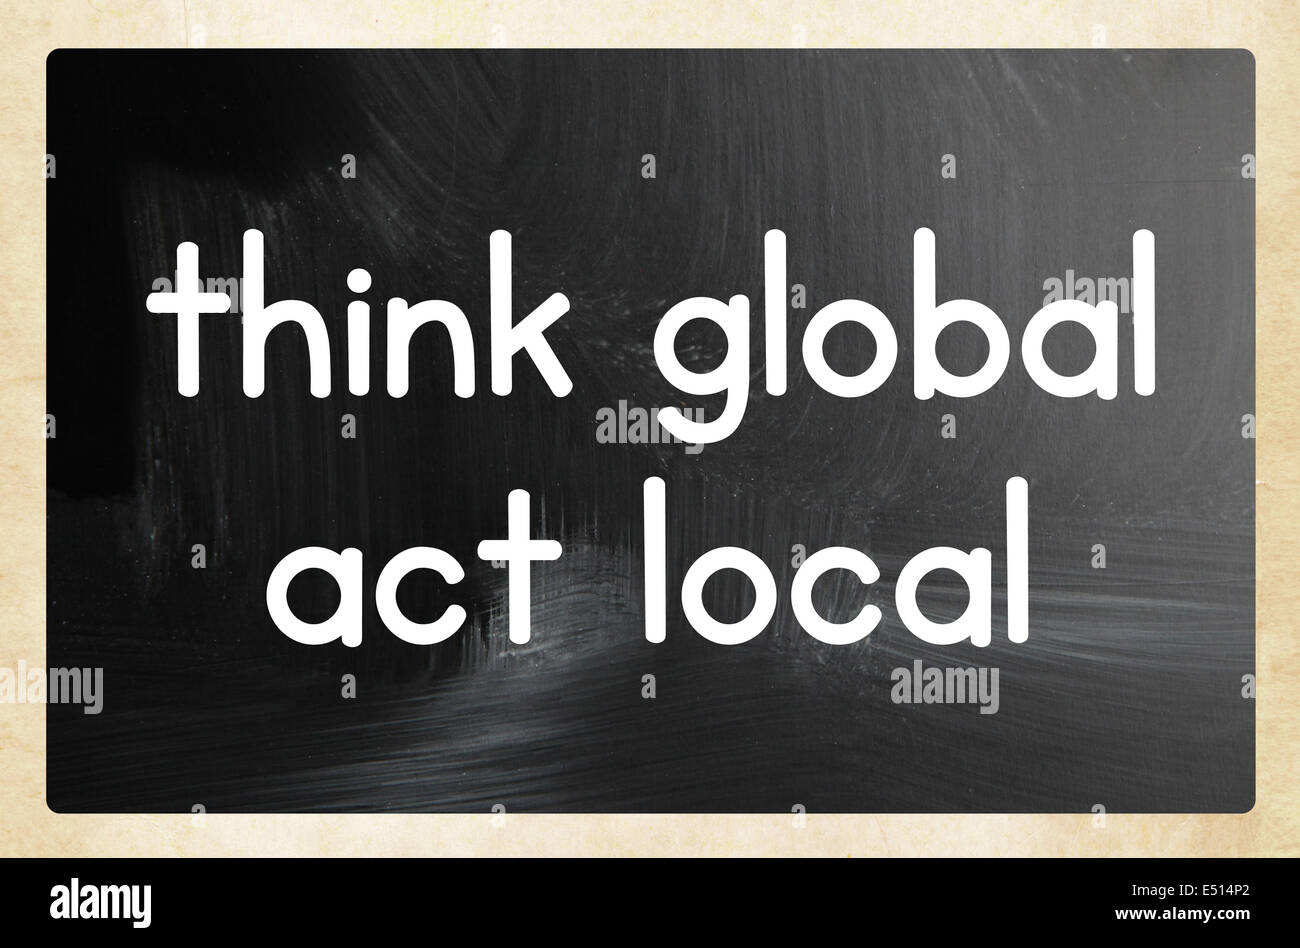 Think global act local concept Immagini Stock